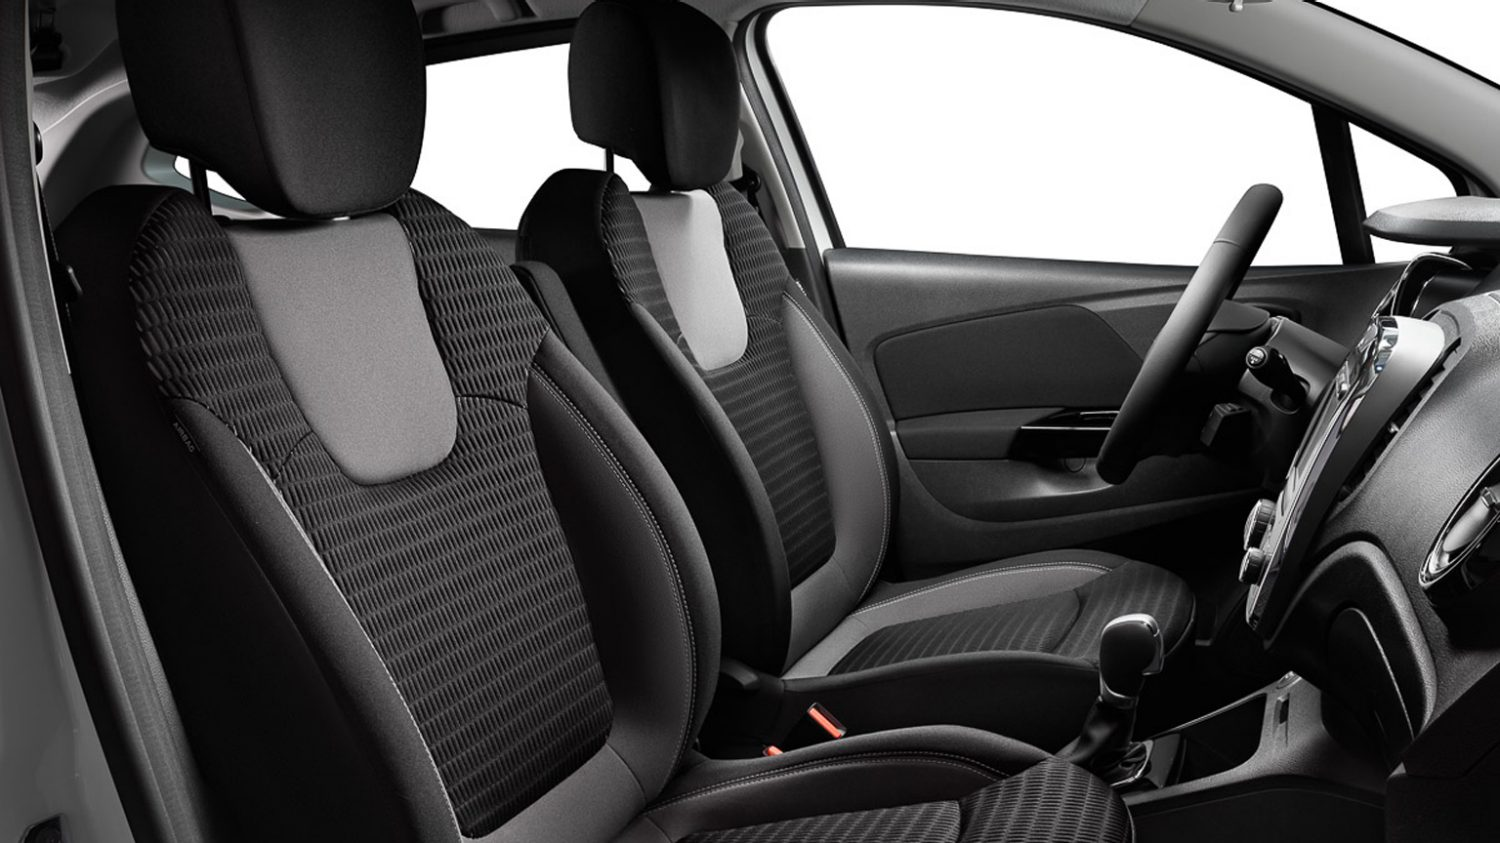 Kaptur-design-seats_1536x864.jpg.ximg.l_full_m.smart